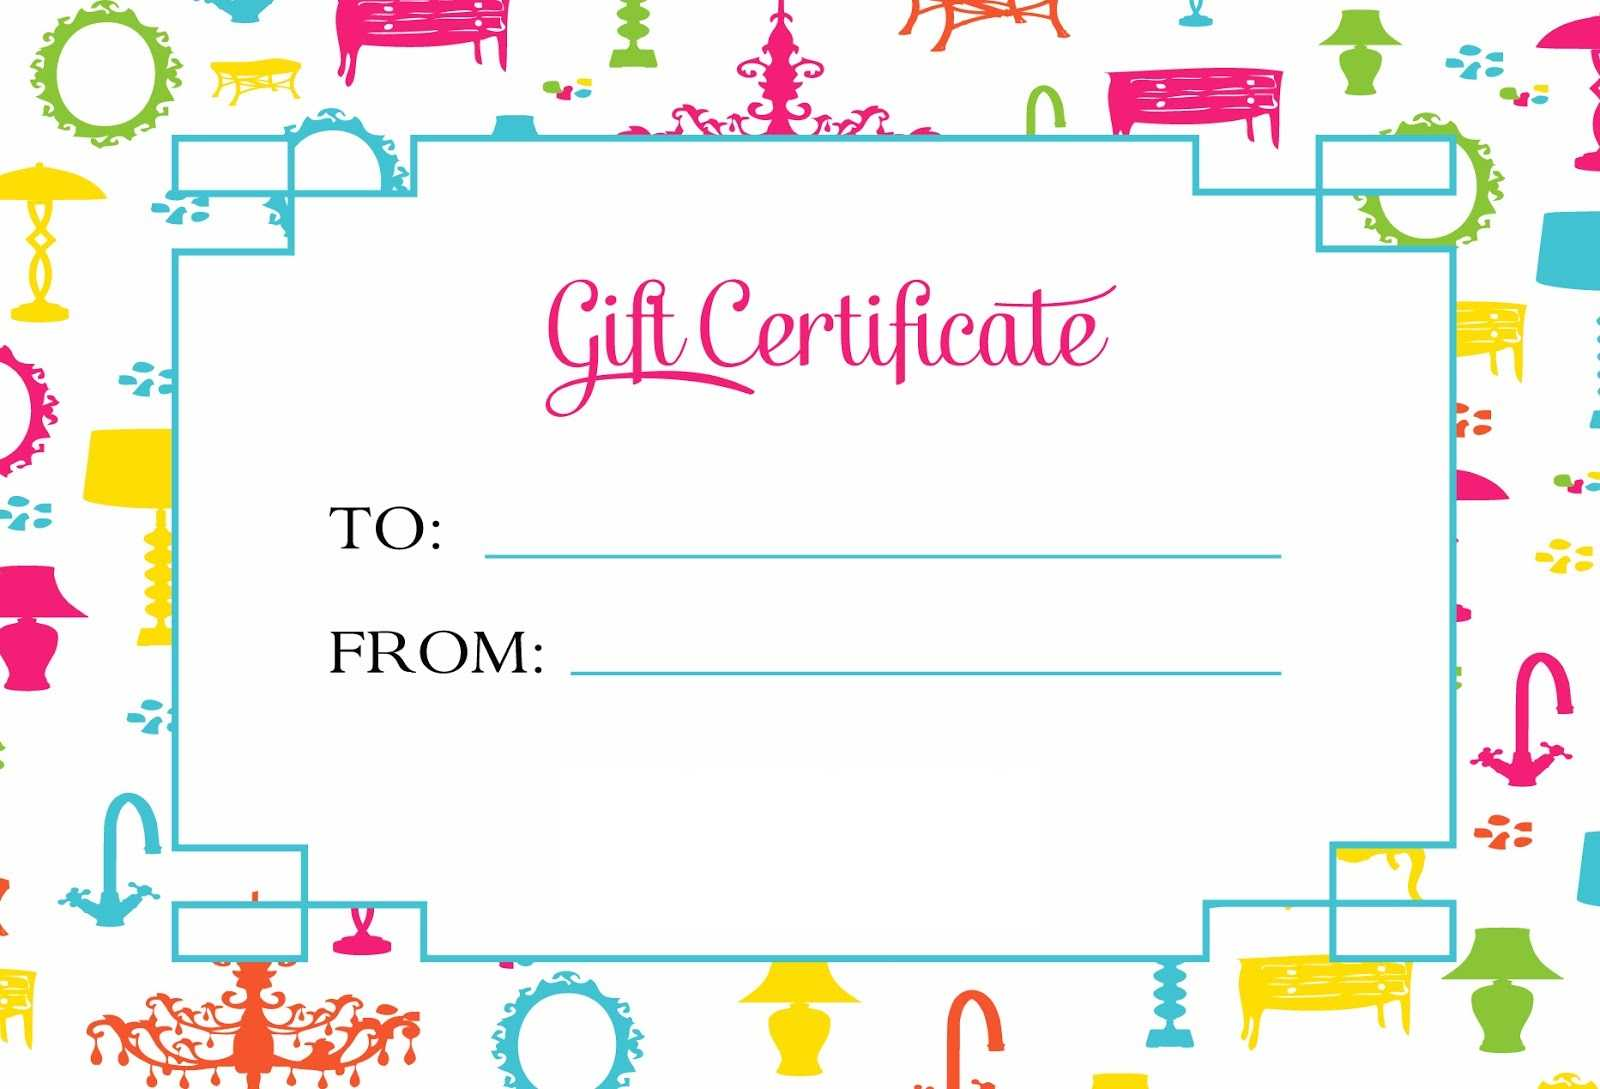 Gift Certificate Template For Kids Blanks | Loving Printable Pertaining To Kids Gift Certificate Template